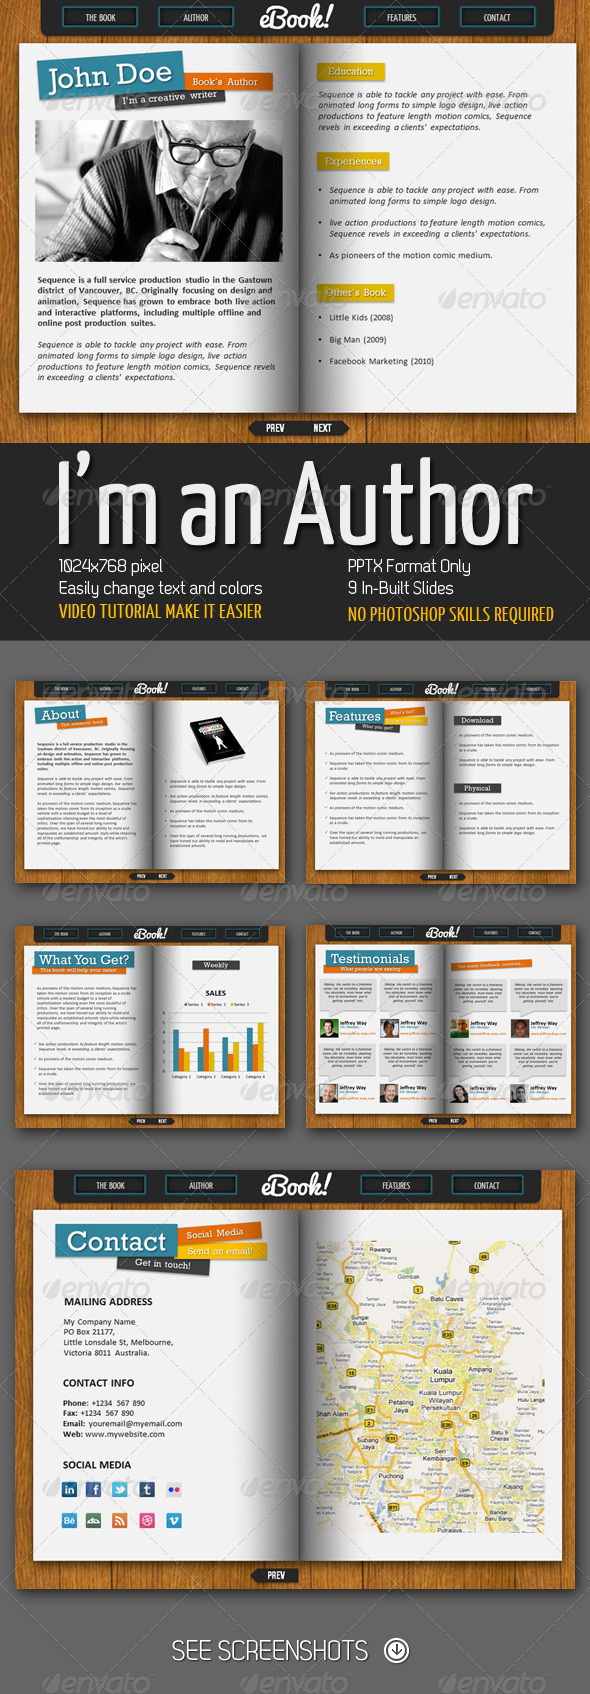 I'm an Author PowerPoint Presentation - Business Powerpoint Templates